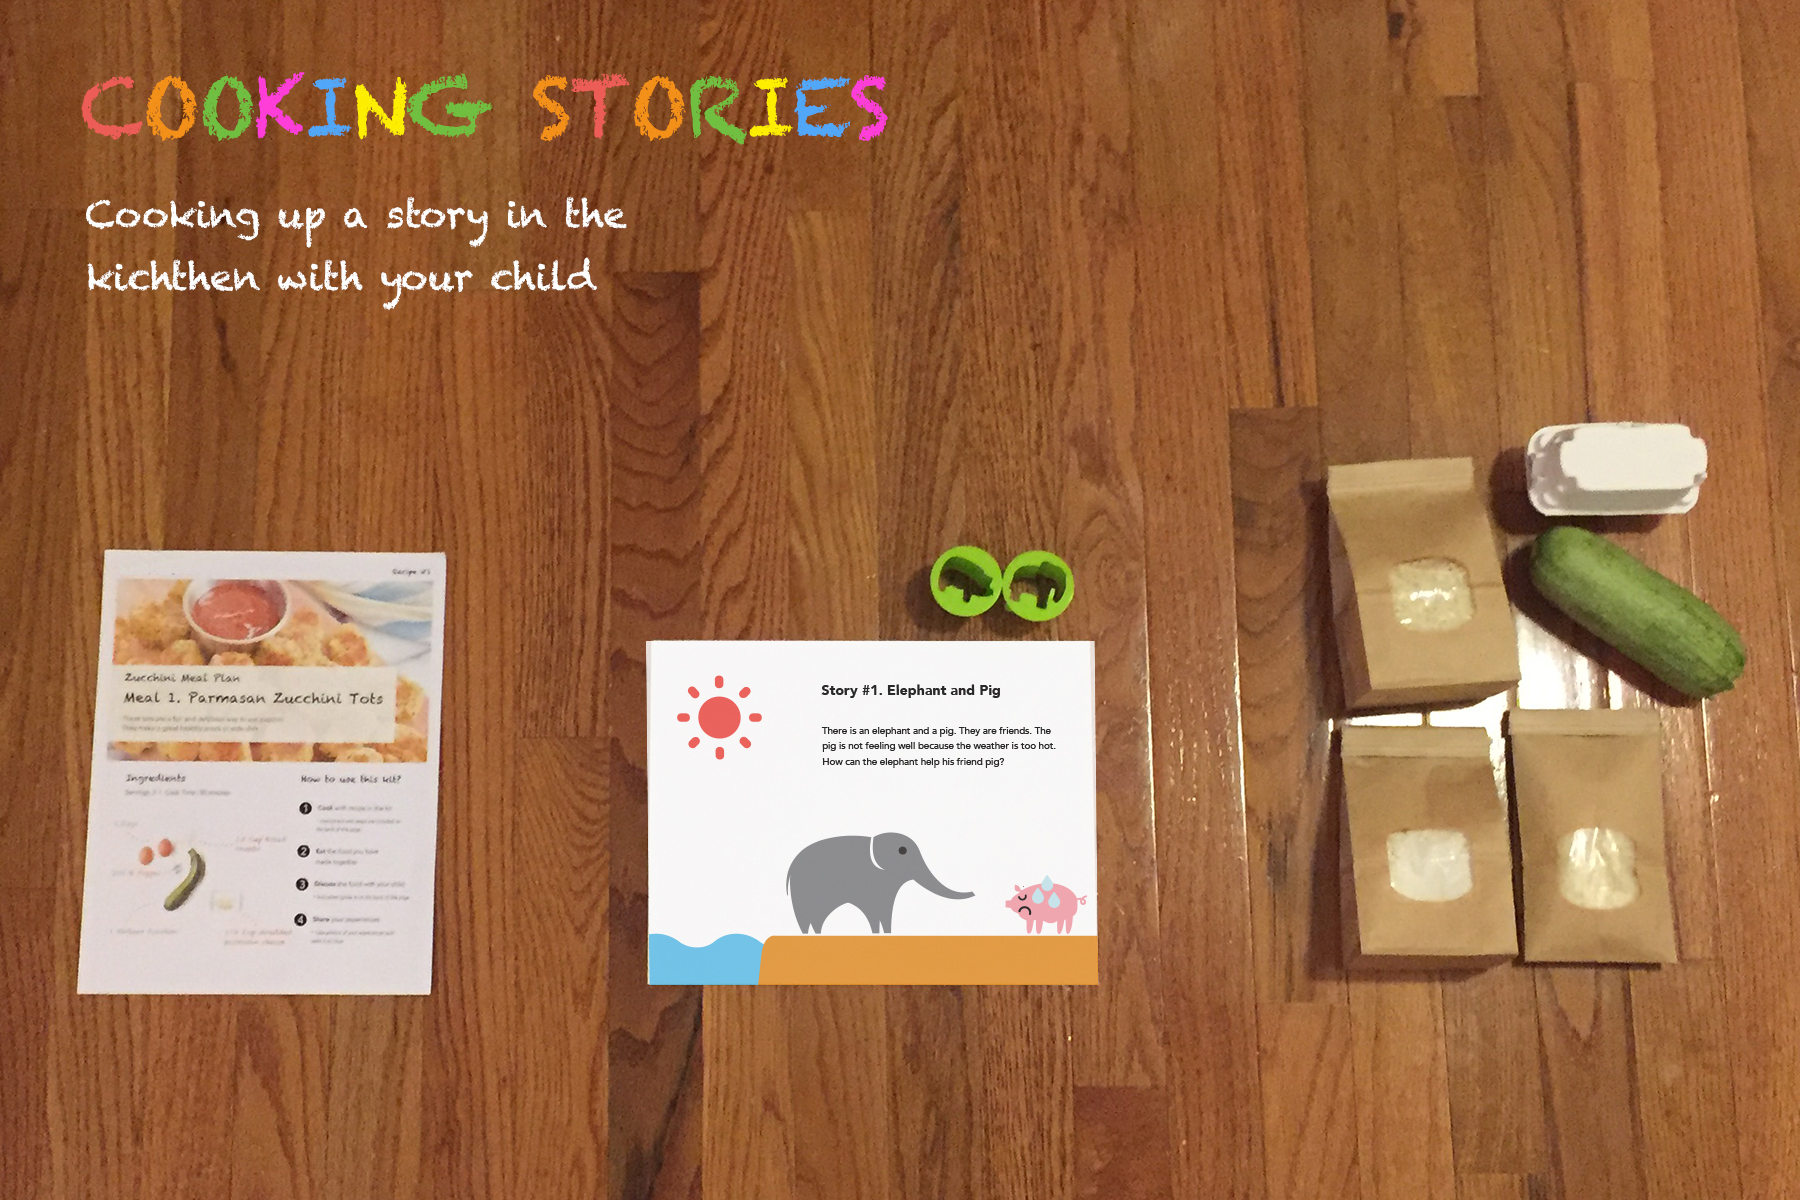 Cooking Stories A delivery service for toddlers' food ingredients